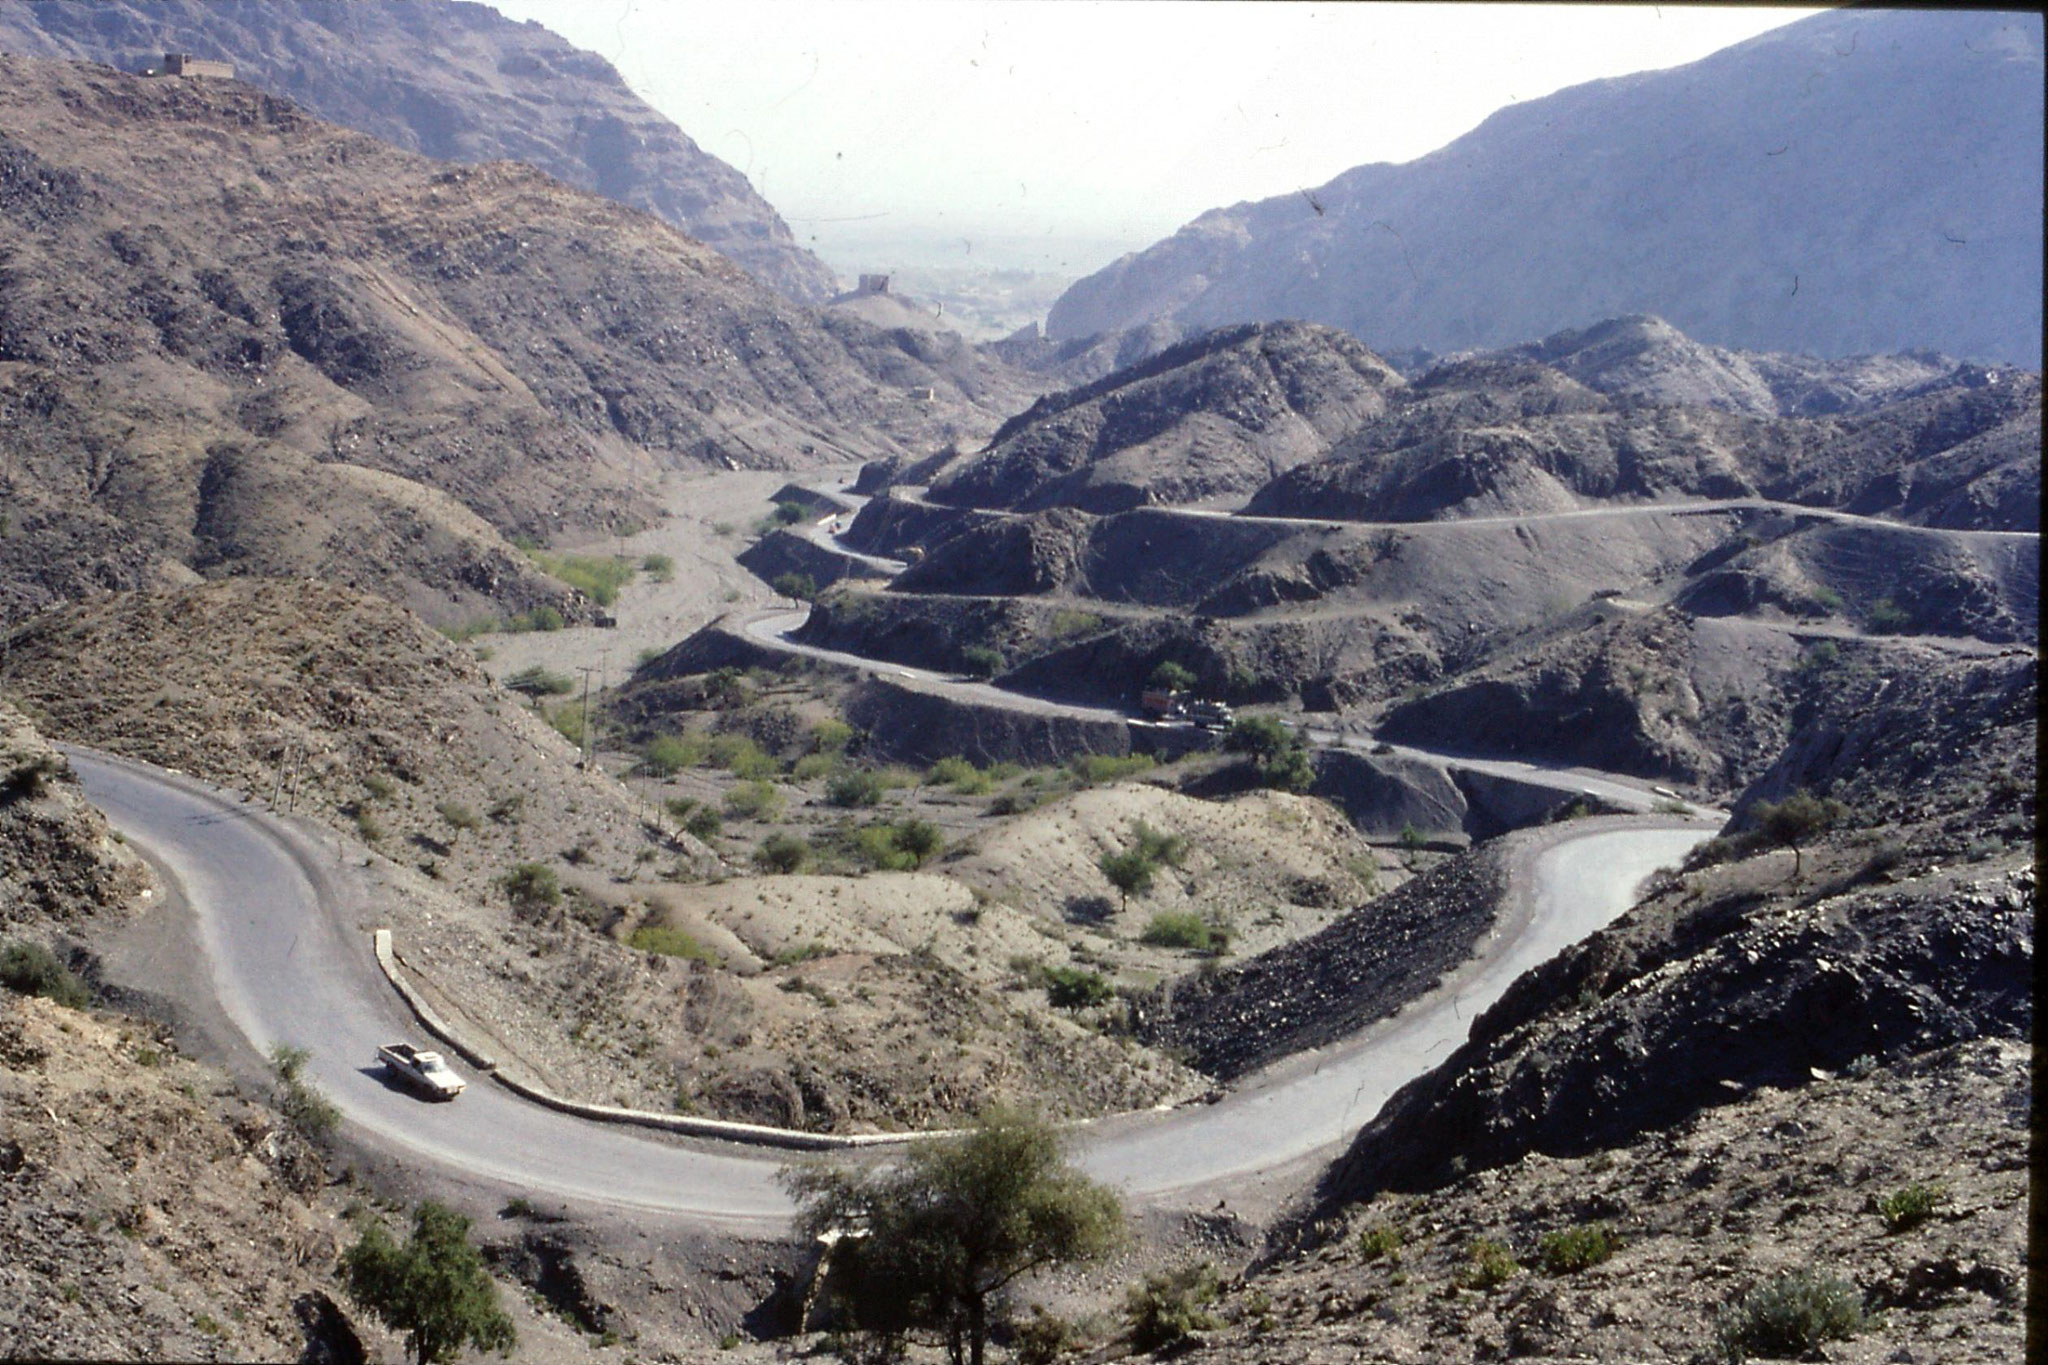 6/11/1989: 19: Khyber Pass view down to Peshawar